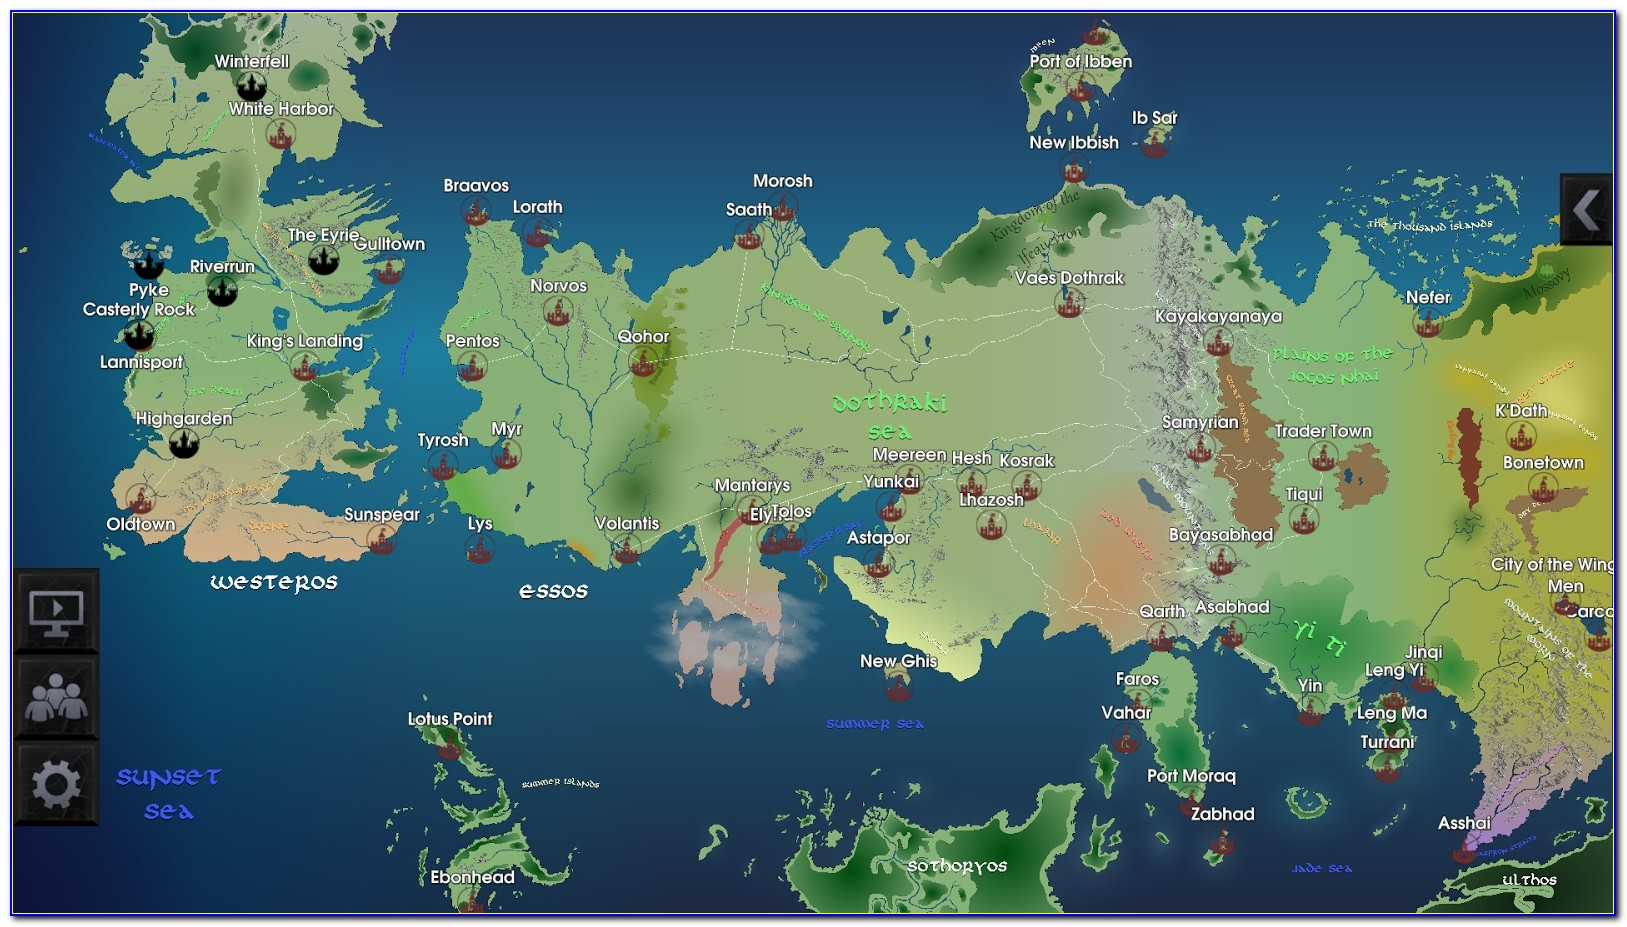 Full Map Of The Game Of Thrones World